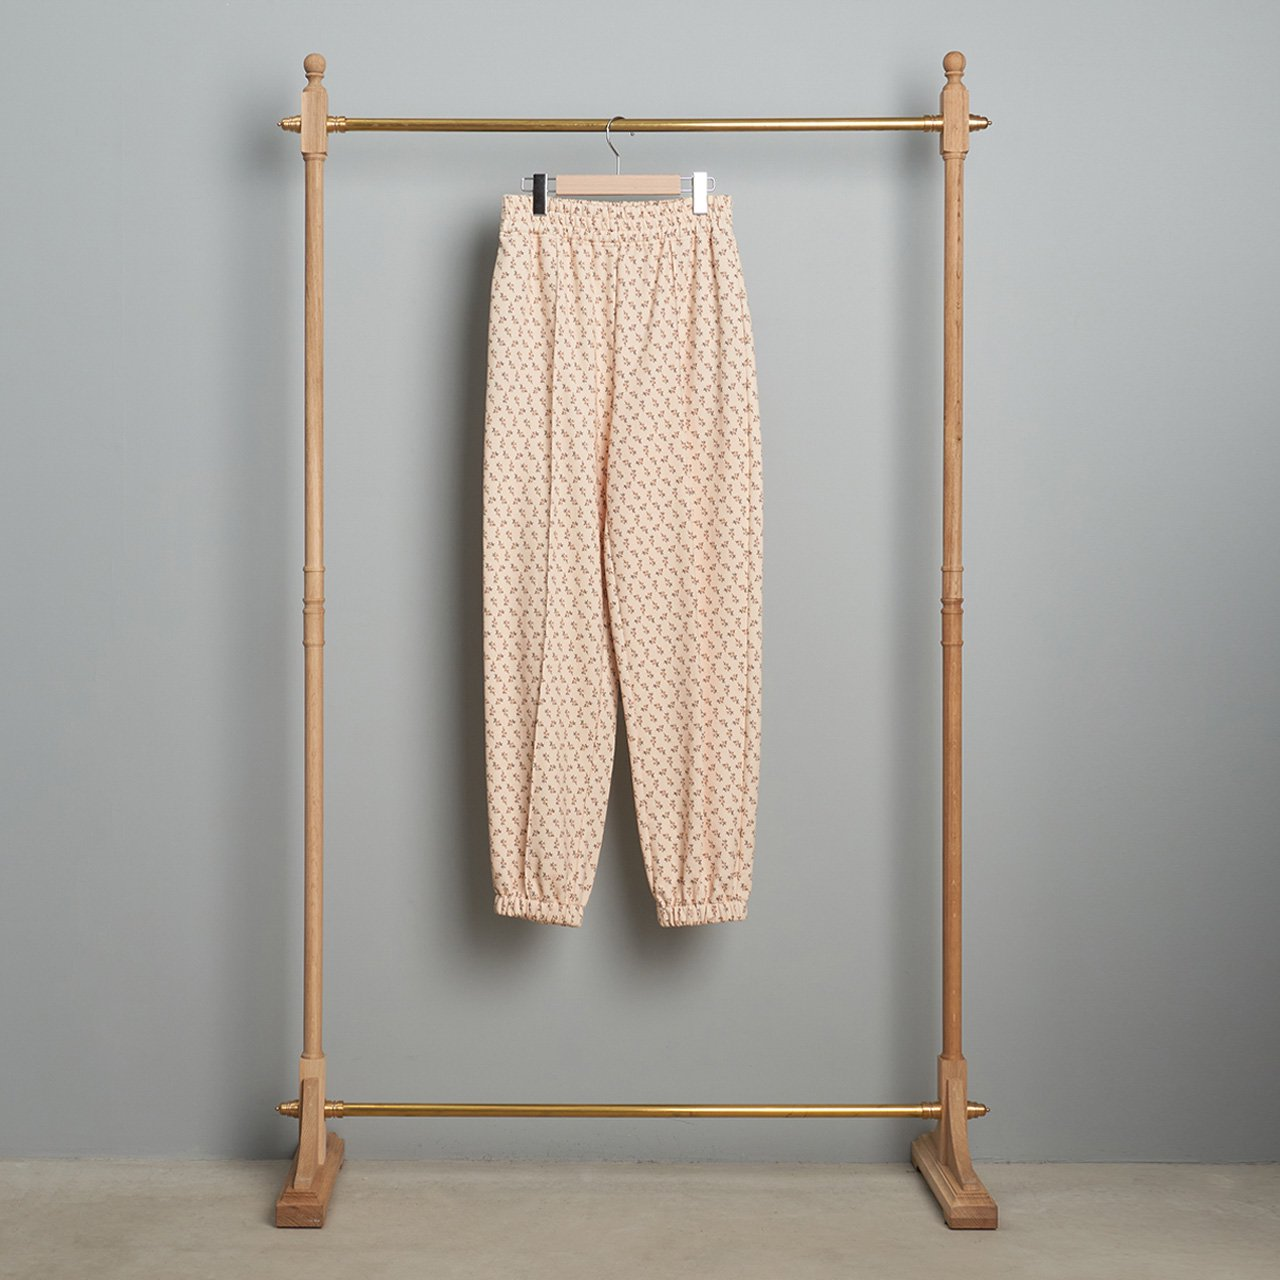 Sea New York<BR>DITSY MIX SWEATPANTS<BR>CREAM